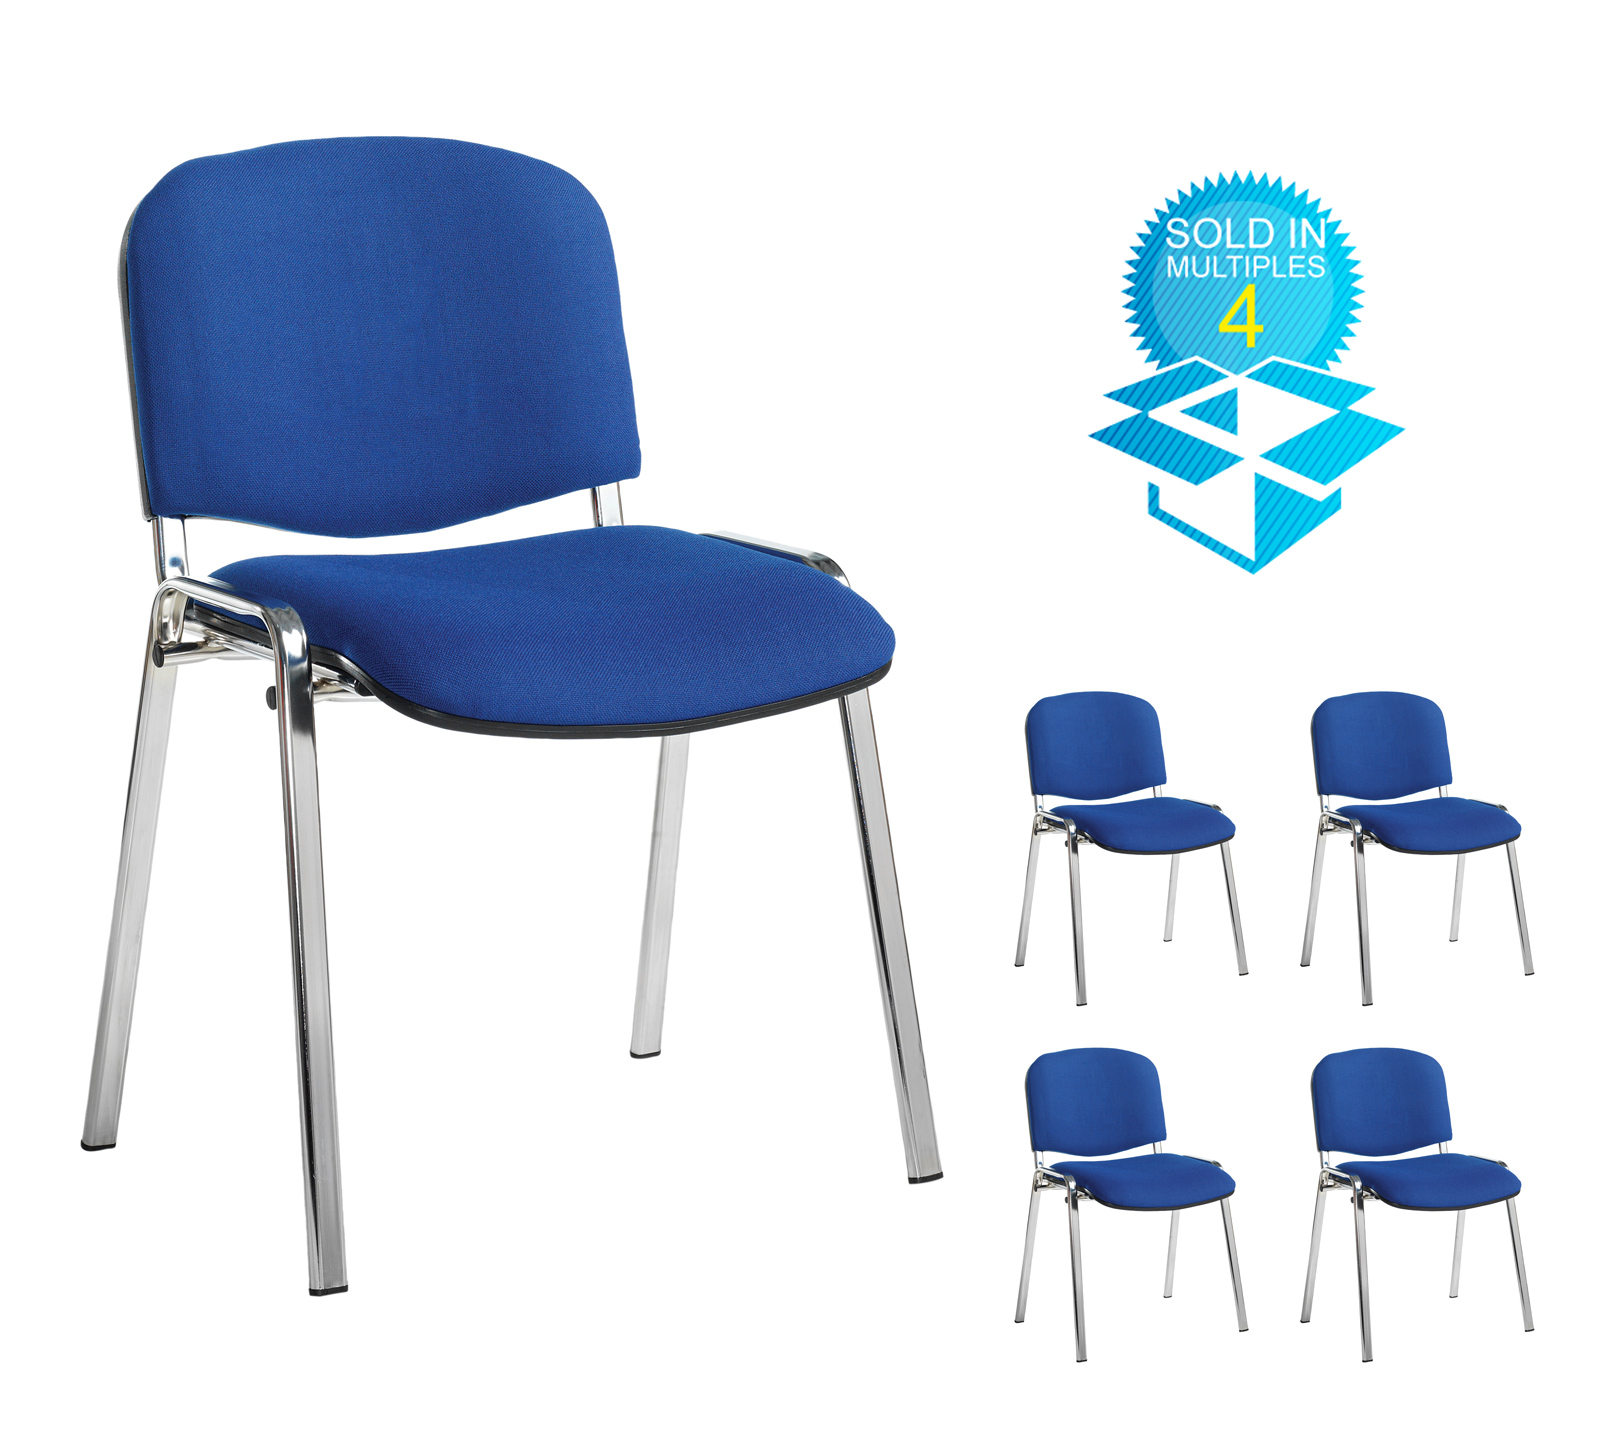 Taurus meeting room stackable chair (box of 4) with chrome frame and no arms - blue